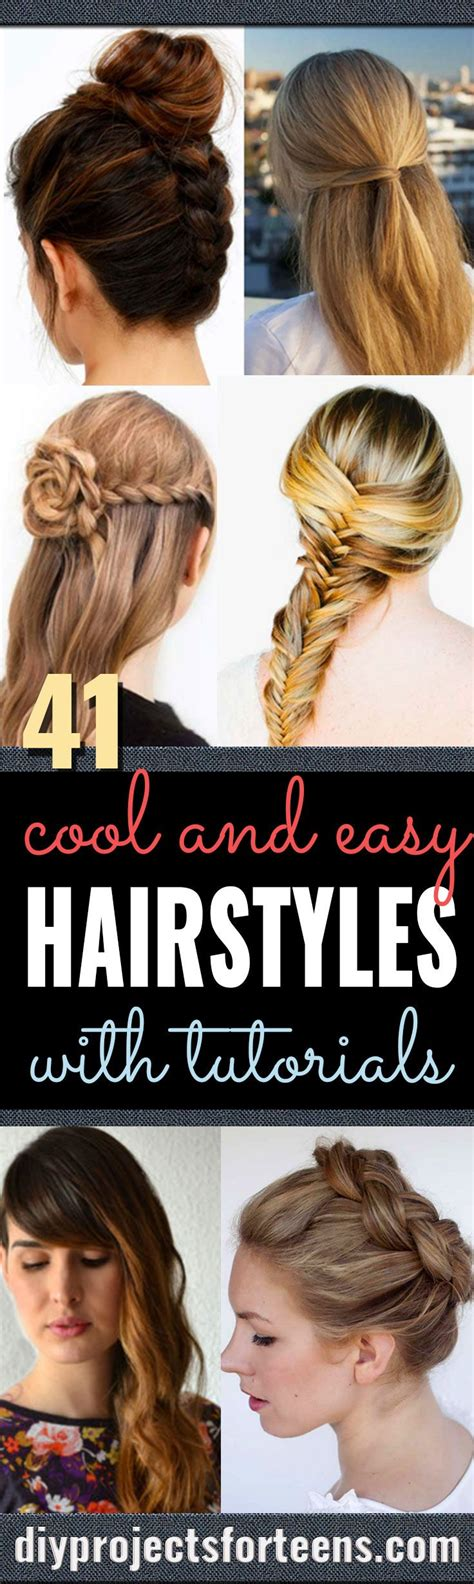 diy cool easy hairstyles  real people